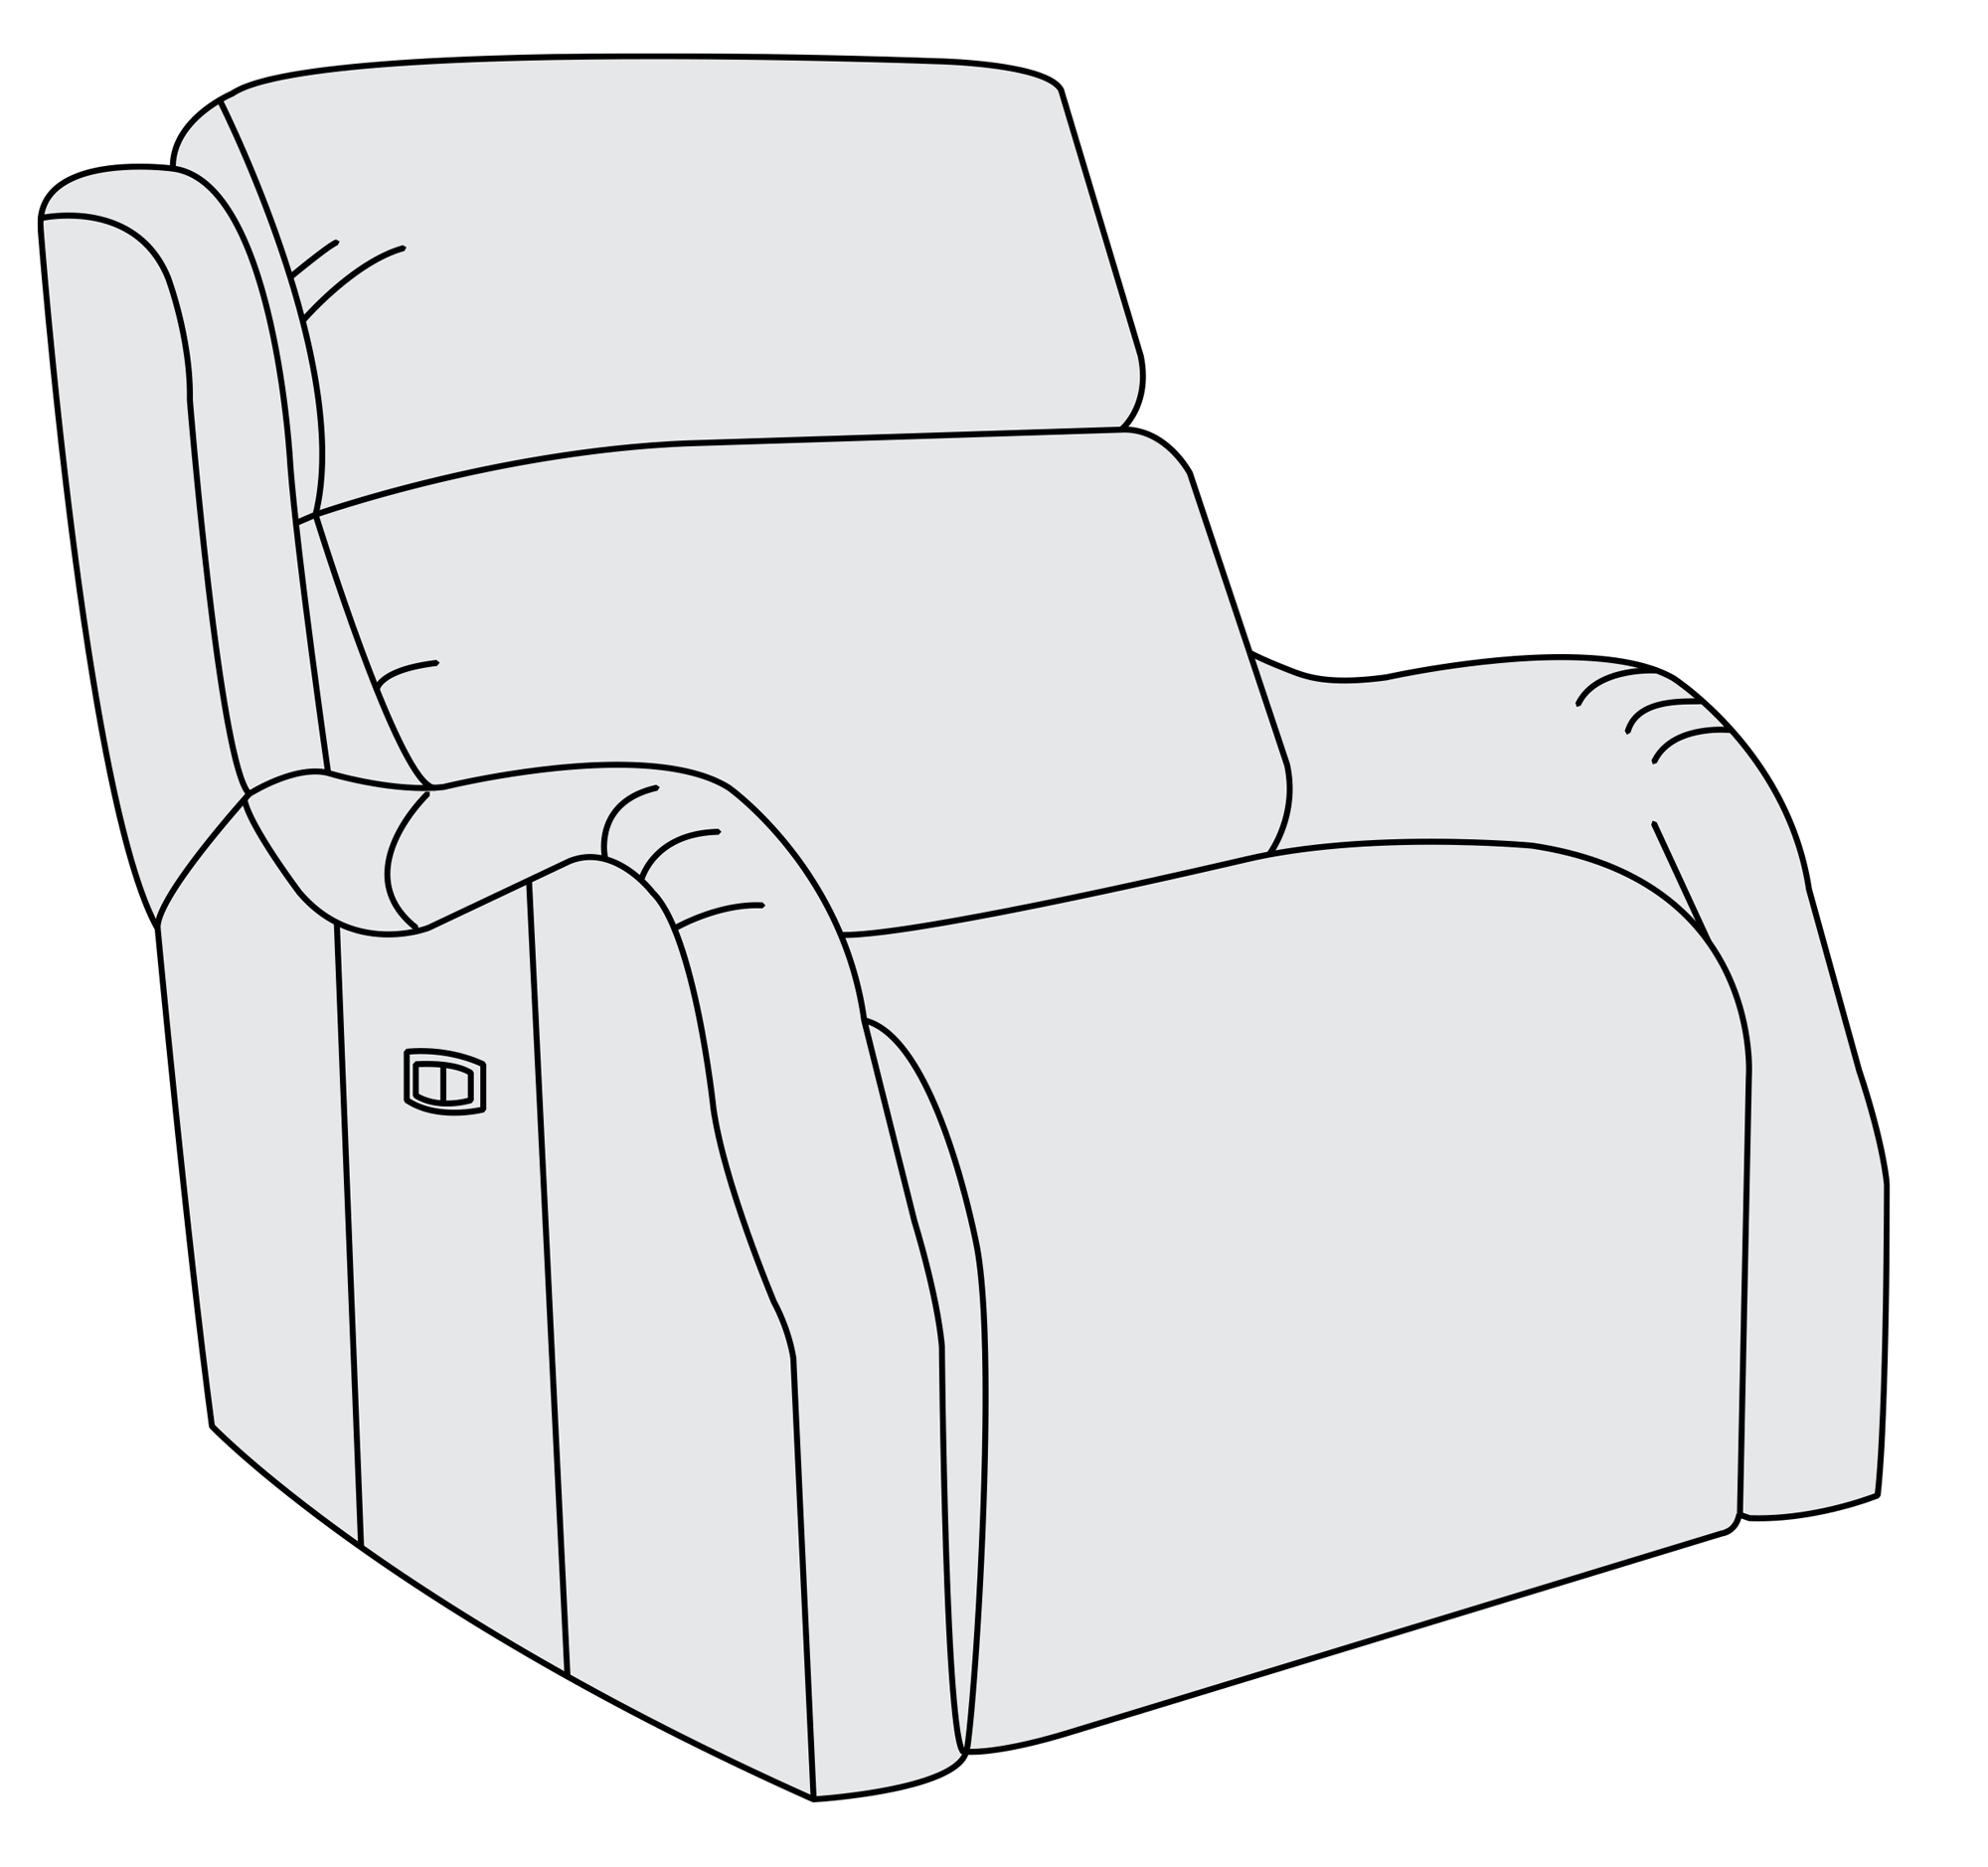 Couch clipart upholstery. Power motion chair bernhardt